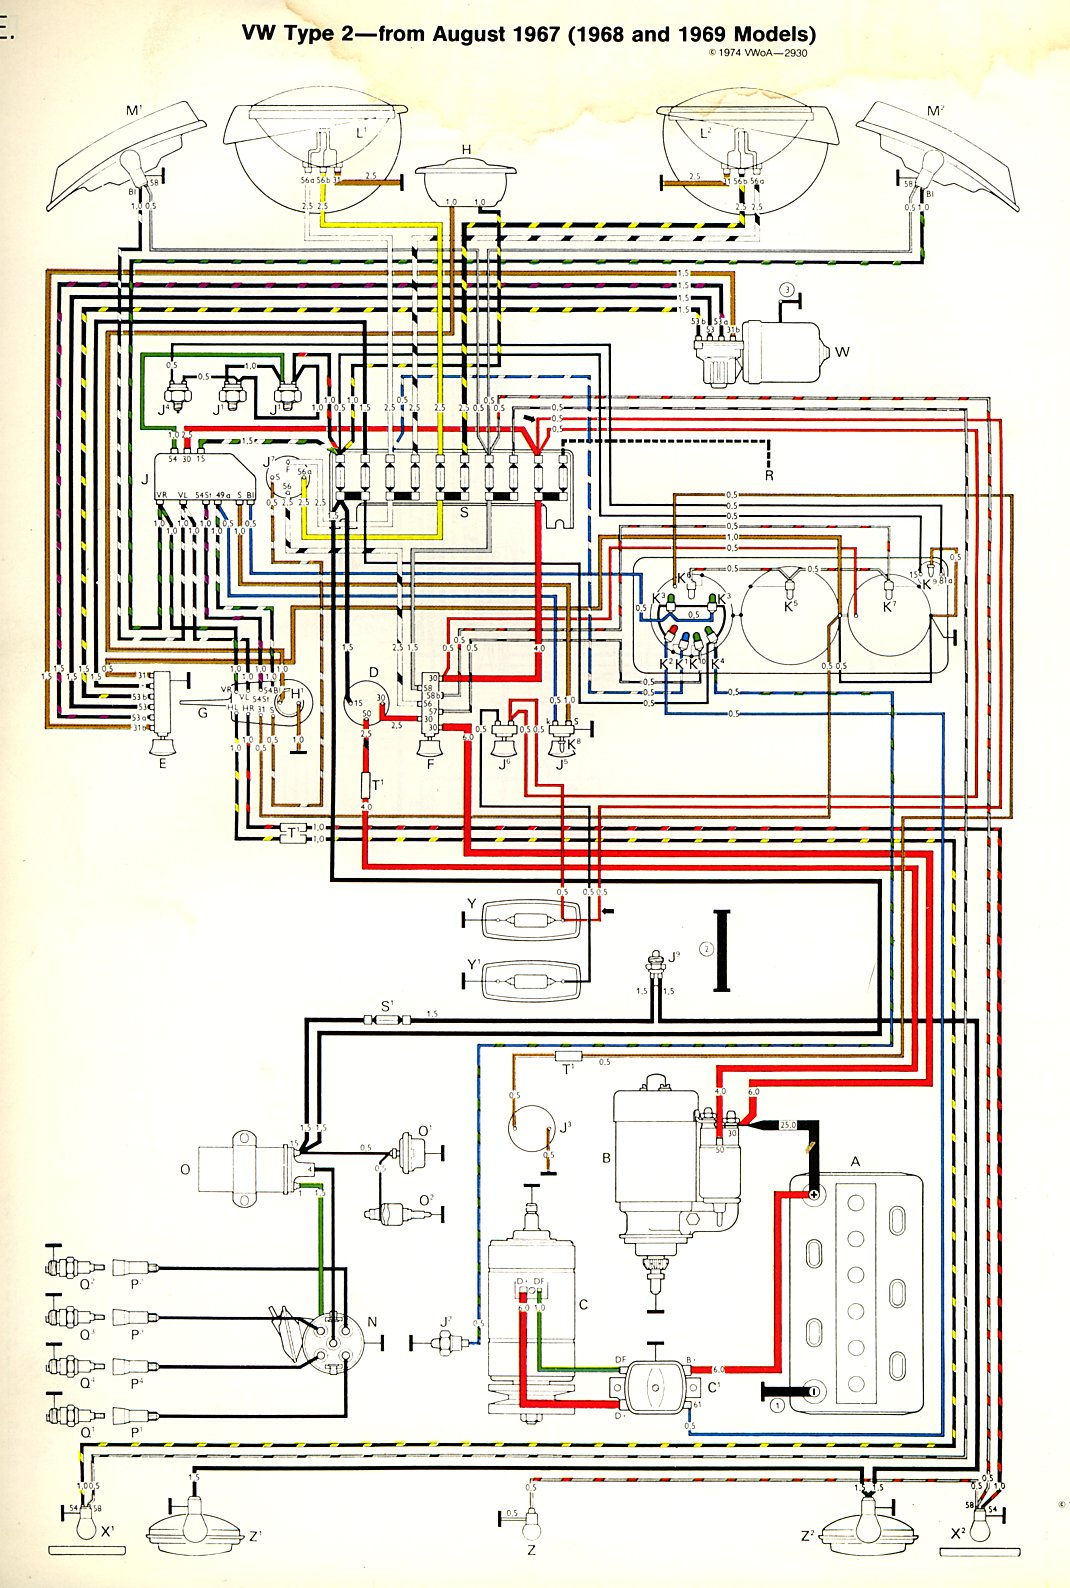 baybus_6869a thesamba com type 2 wiring diagrams vw bus samba wiring diagram at bayanpartner.co